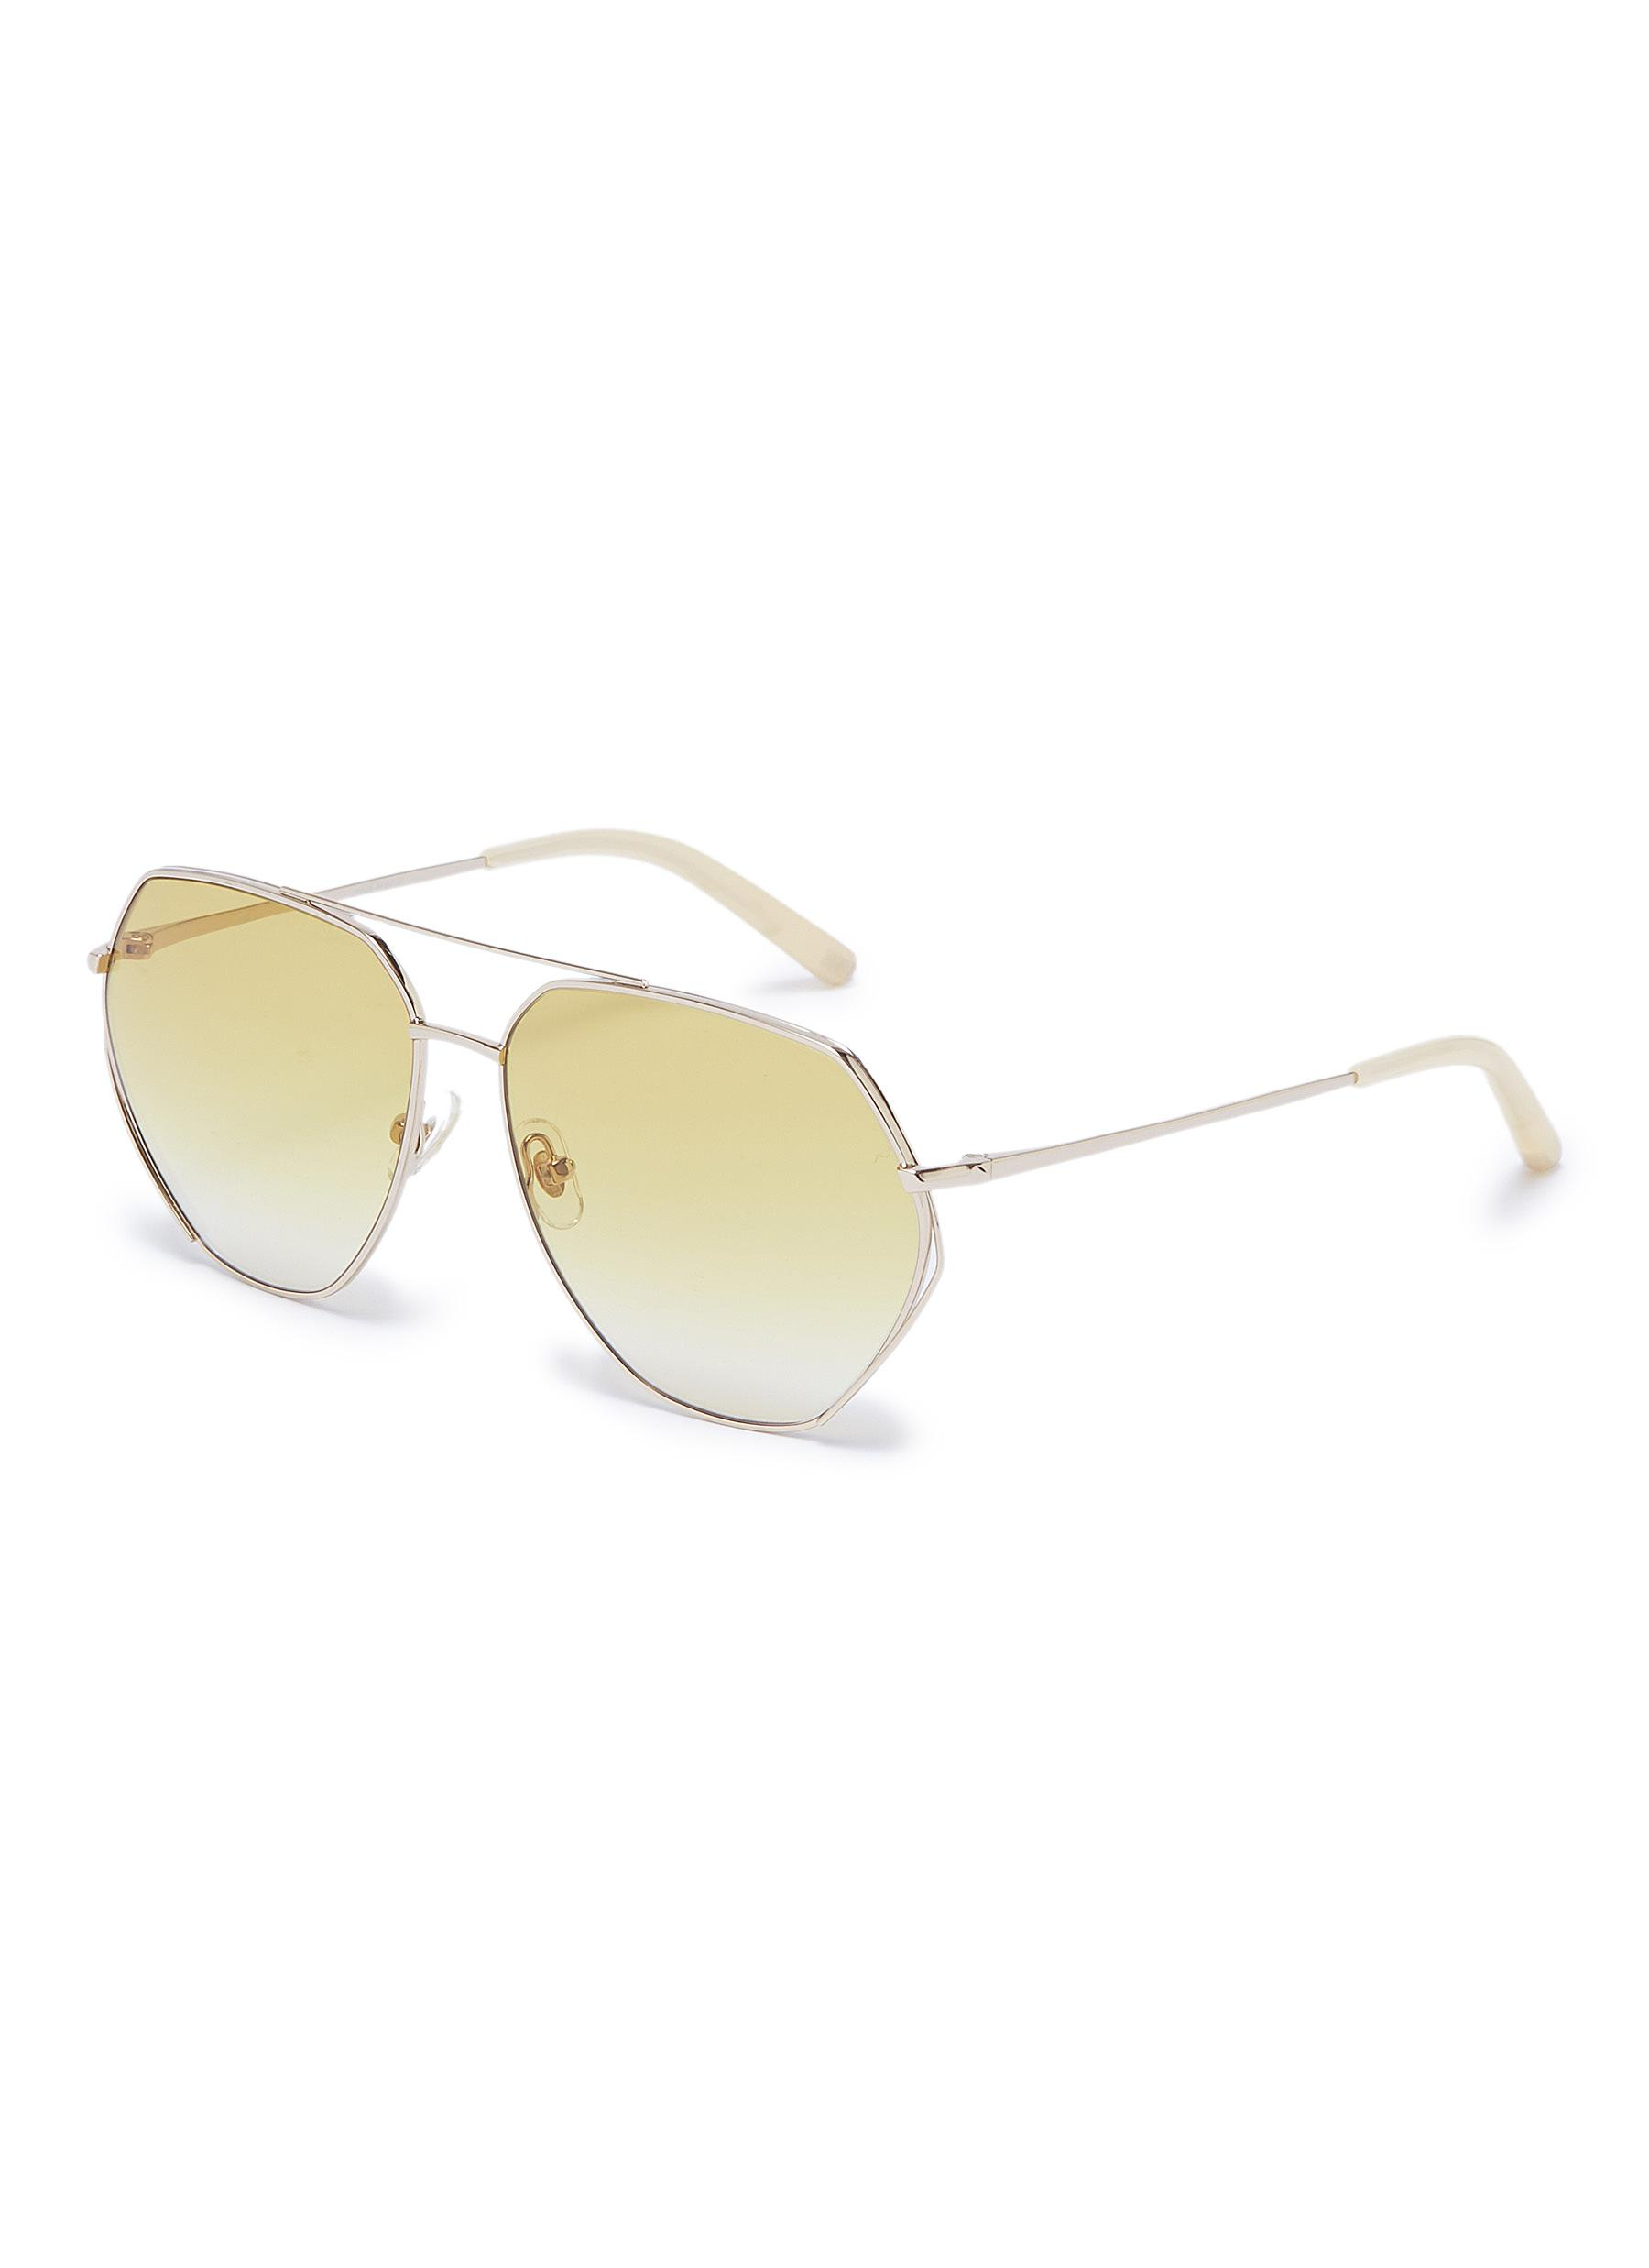 a104475fd6d Main View - Click To Enlarge - Matthew Williamson - Metal geometric aviator  sunglasses